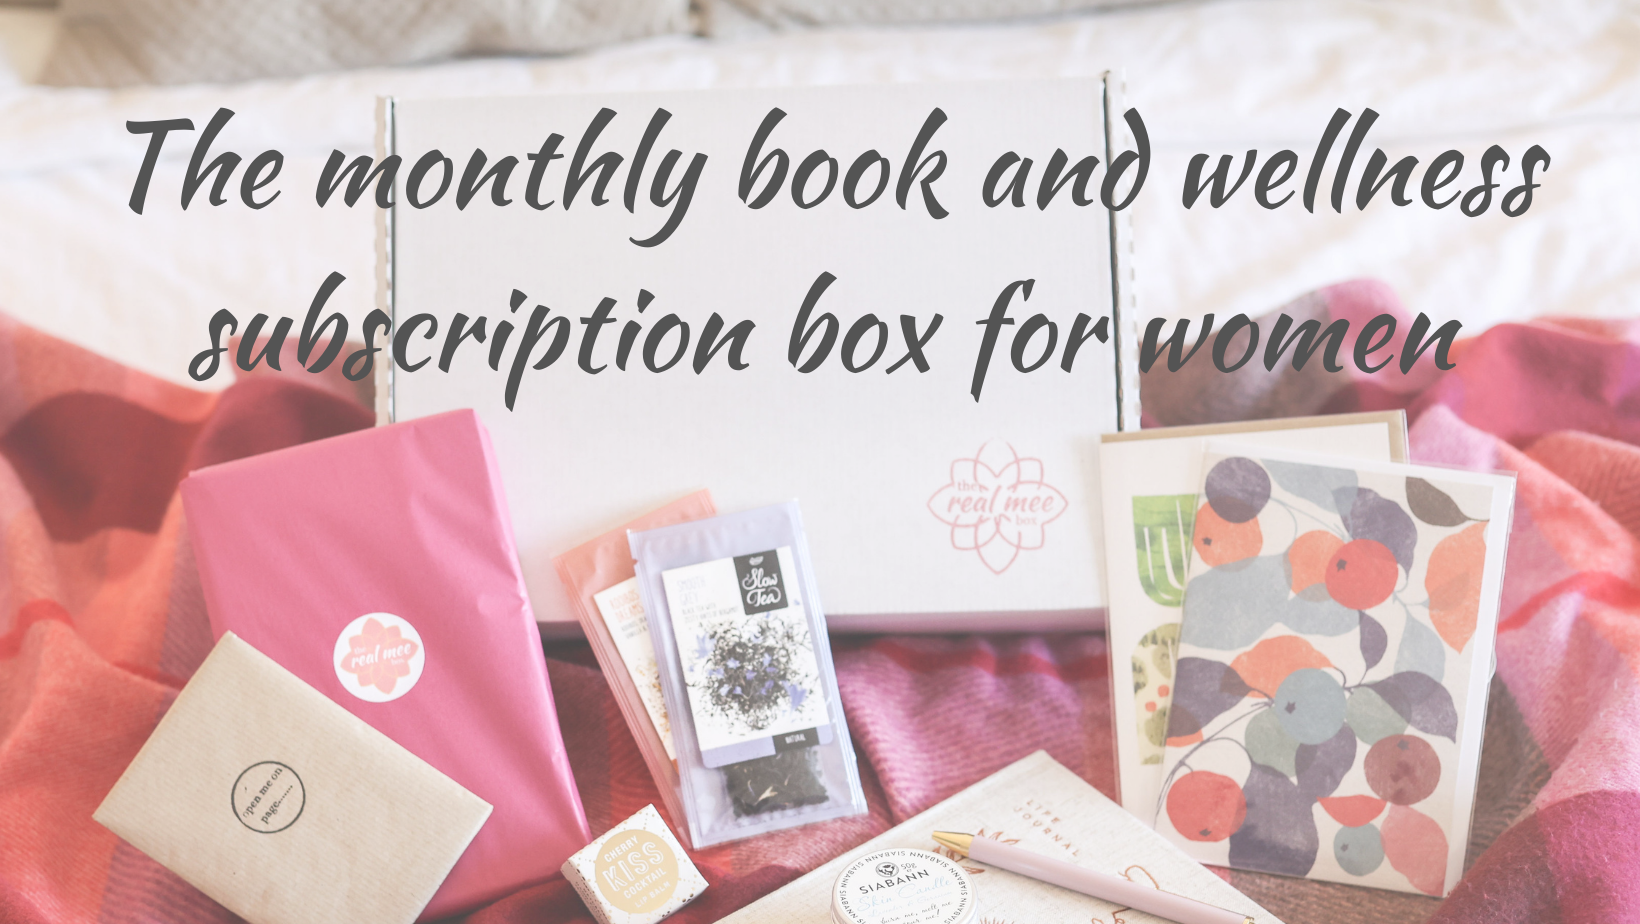 The monthly book and wellness subscription box for women